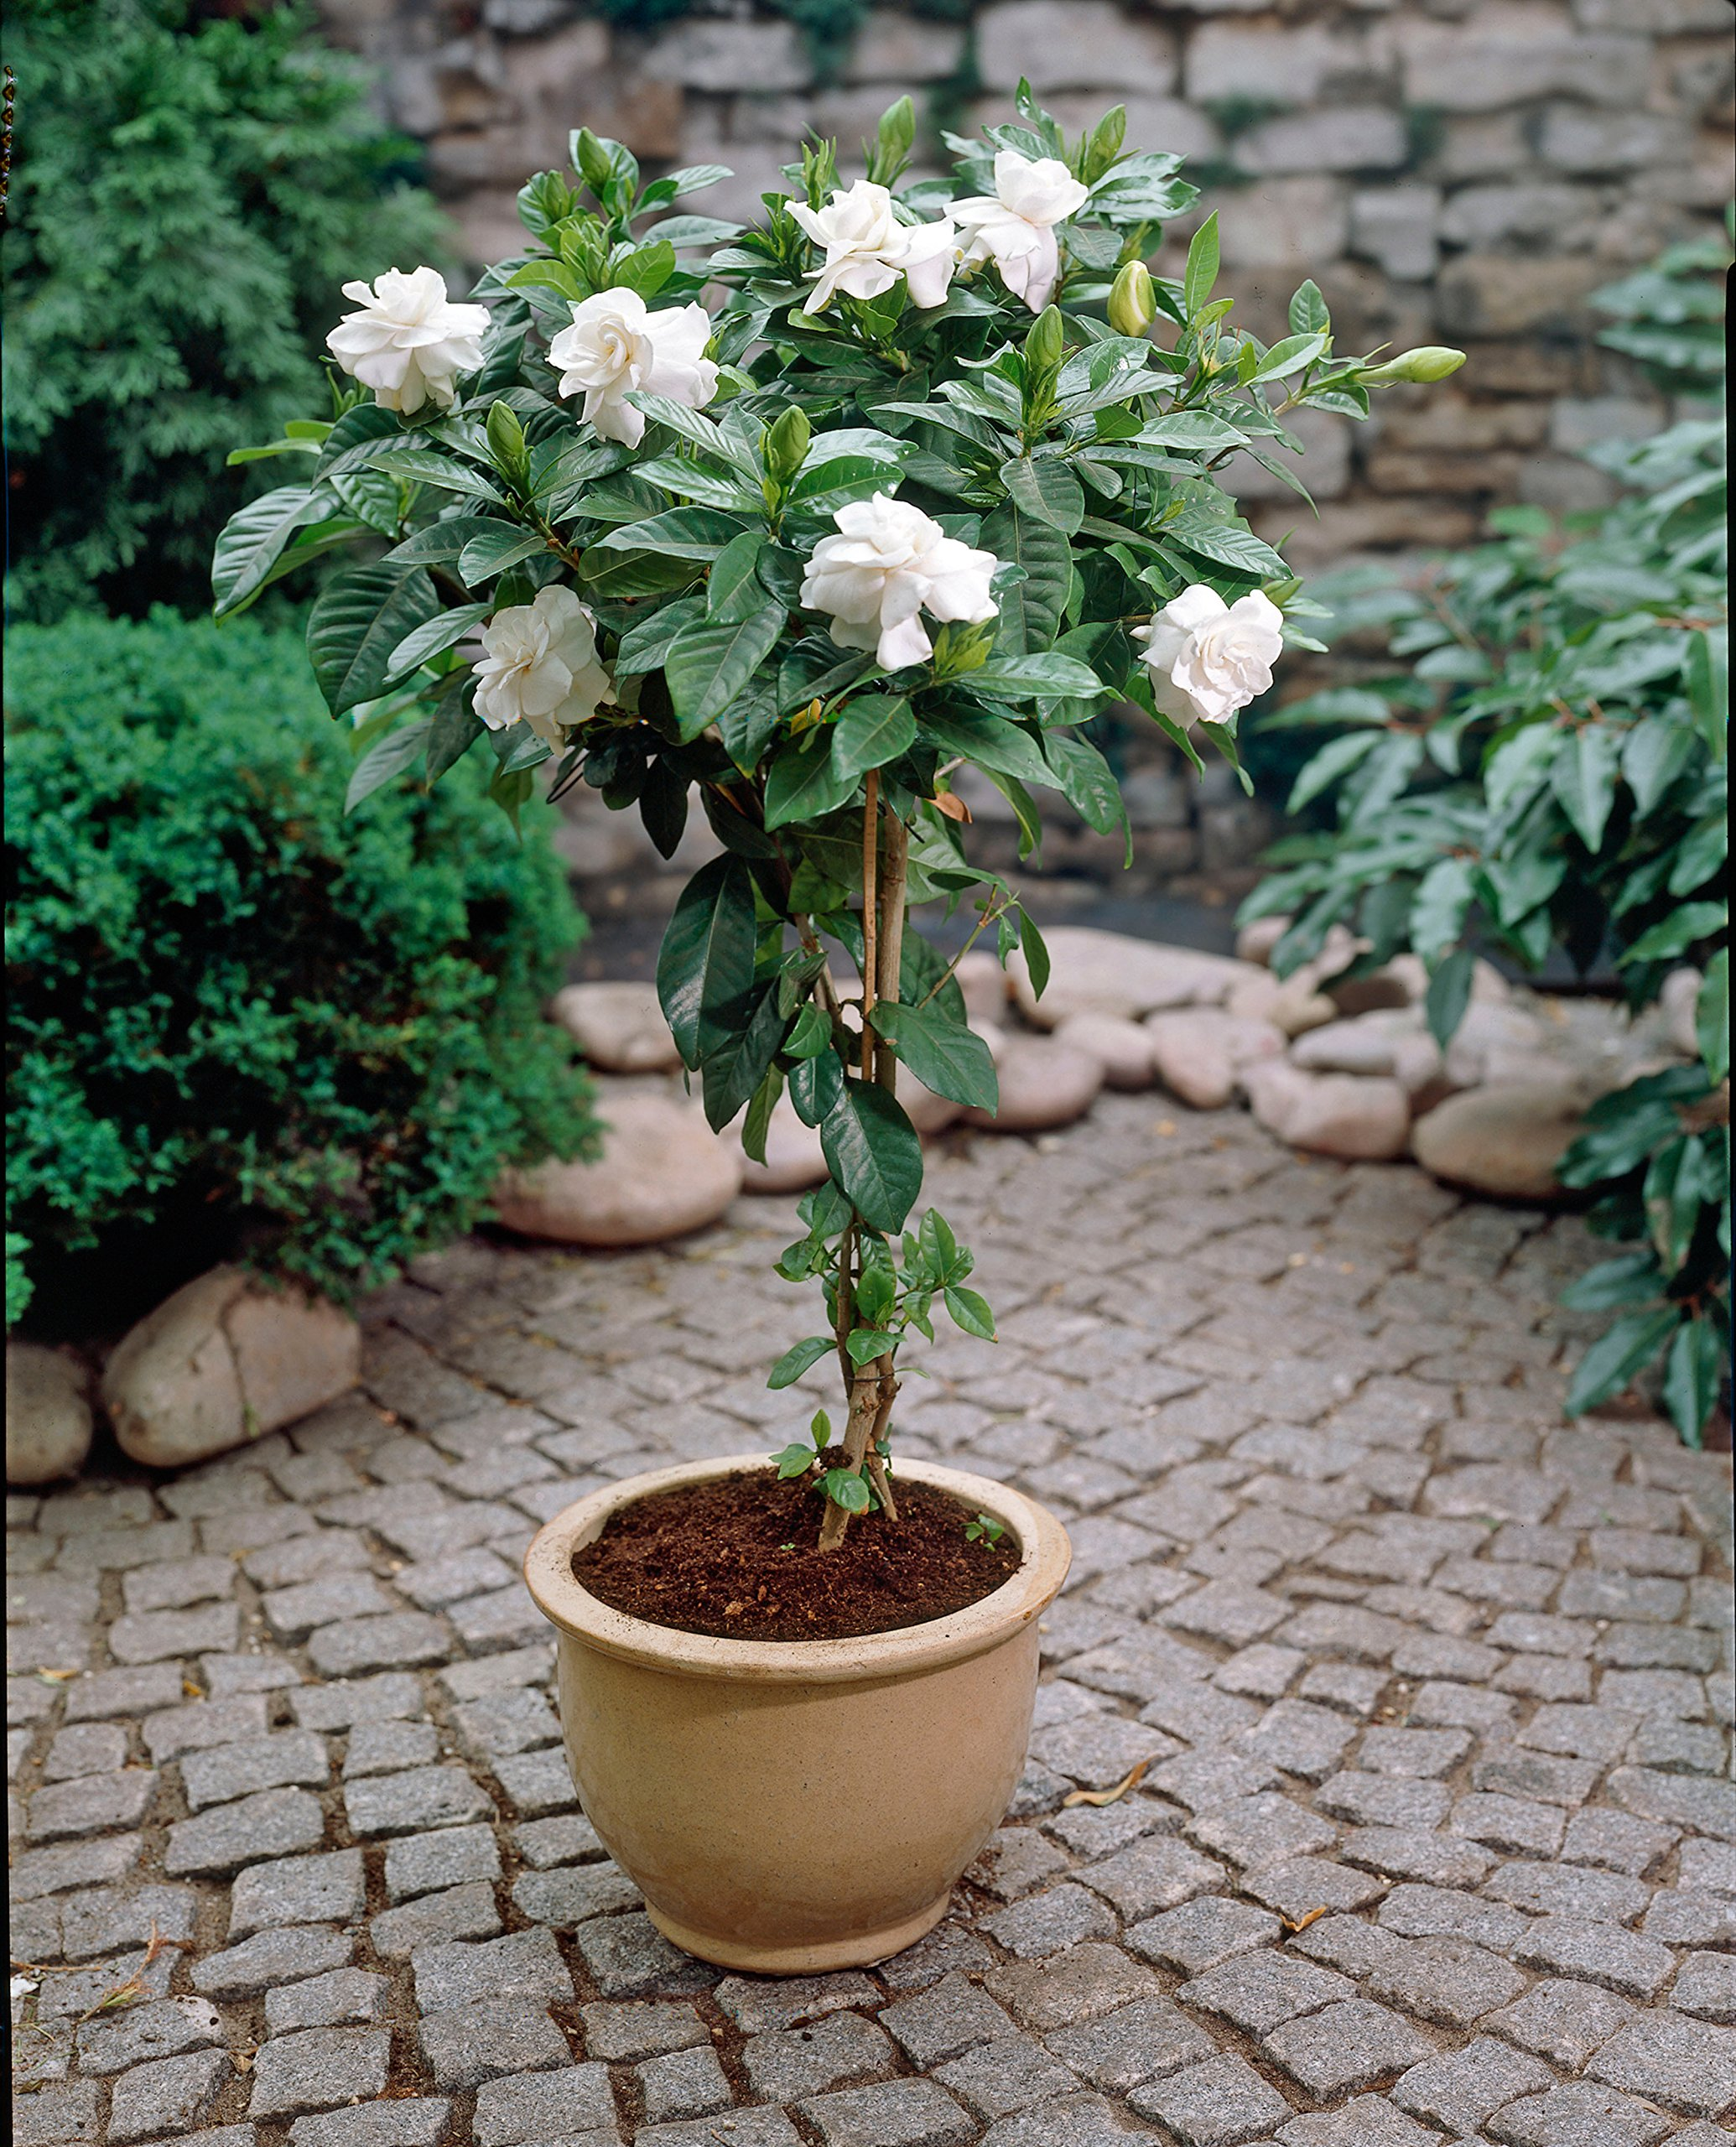 Double Blooming Gardenia Tree - Large Trees, Ready to Bloom 1st Year! - 3-4 ft. | No Shipping to AZ by Brighter Blooms (Image #3)